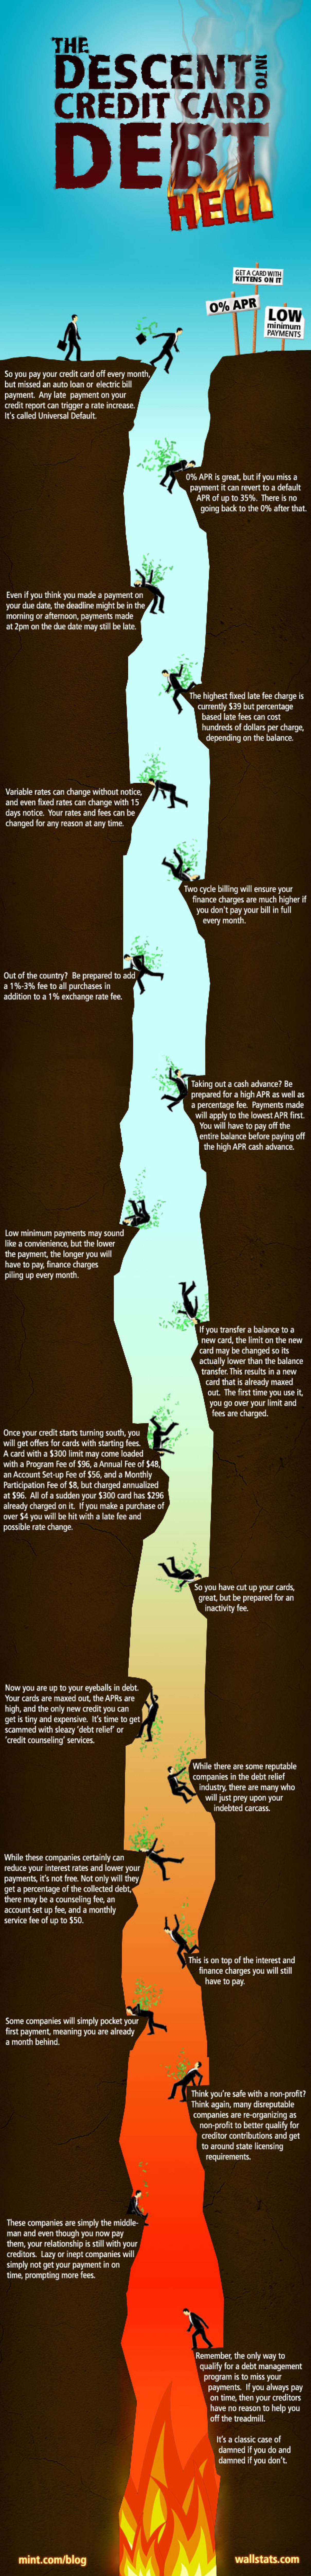 The Descent into Credit Card Debt Hell Infographic